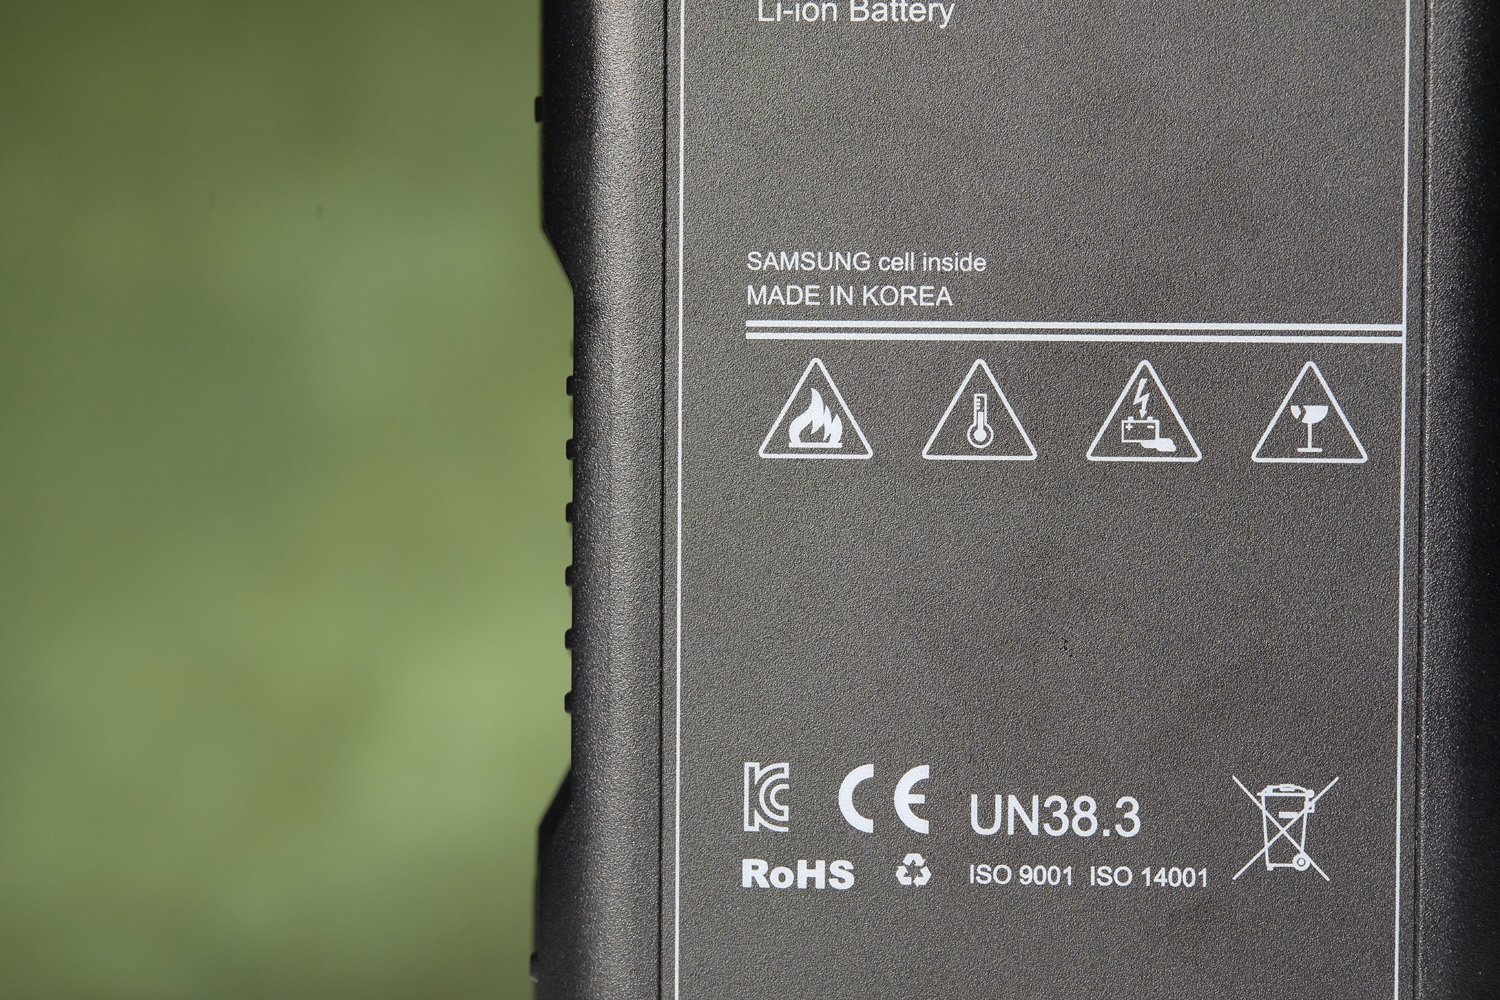 cages_batteries_0094_1.jpg